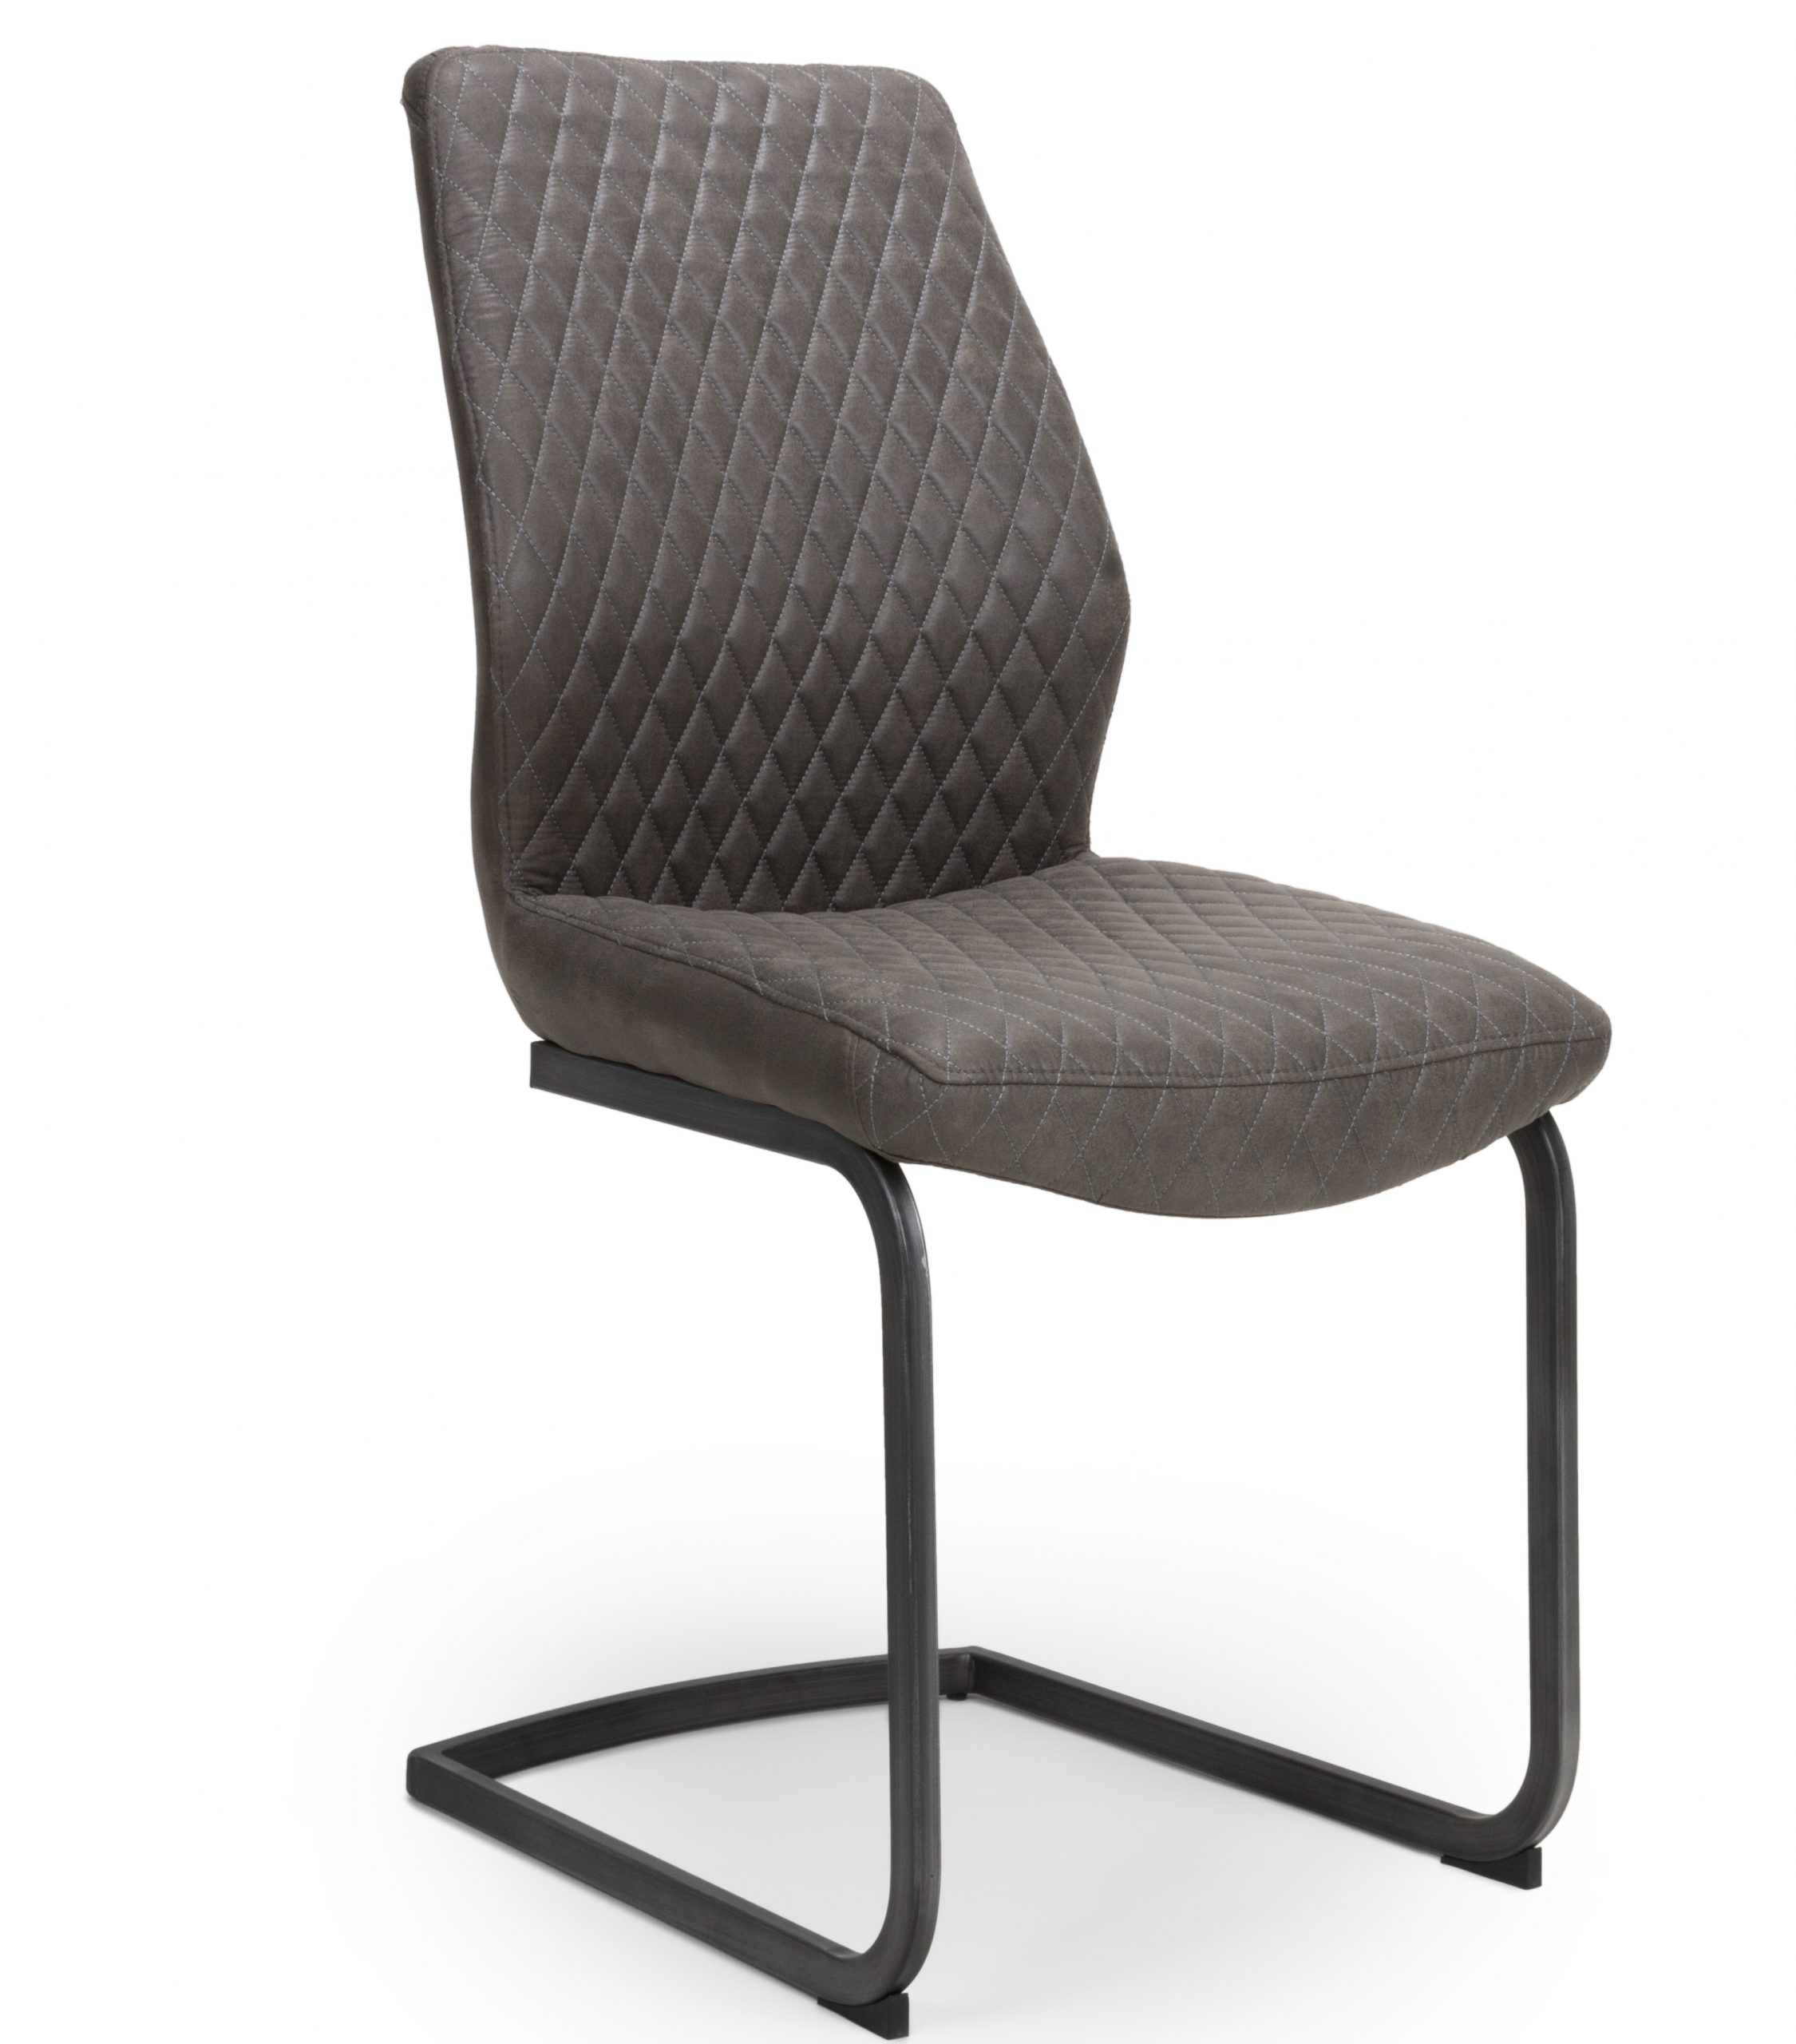 Harley Grey leather cantilever dining chair